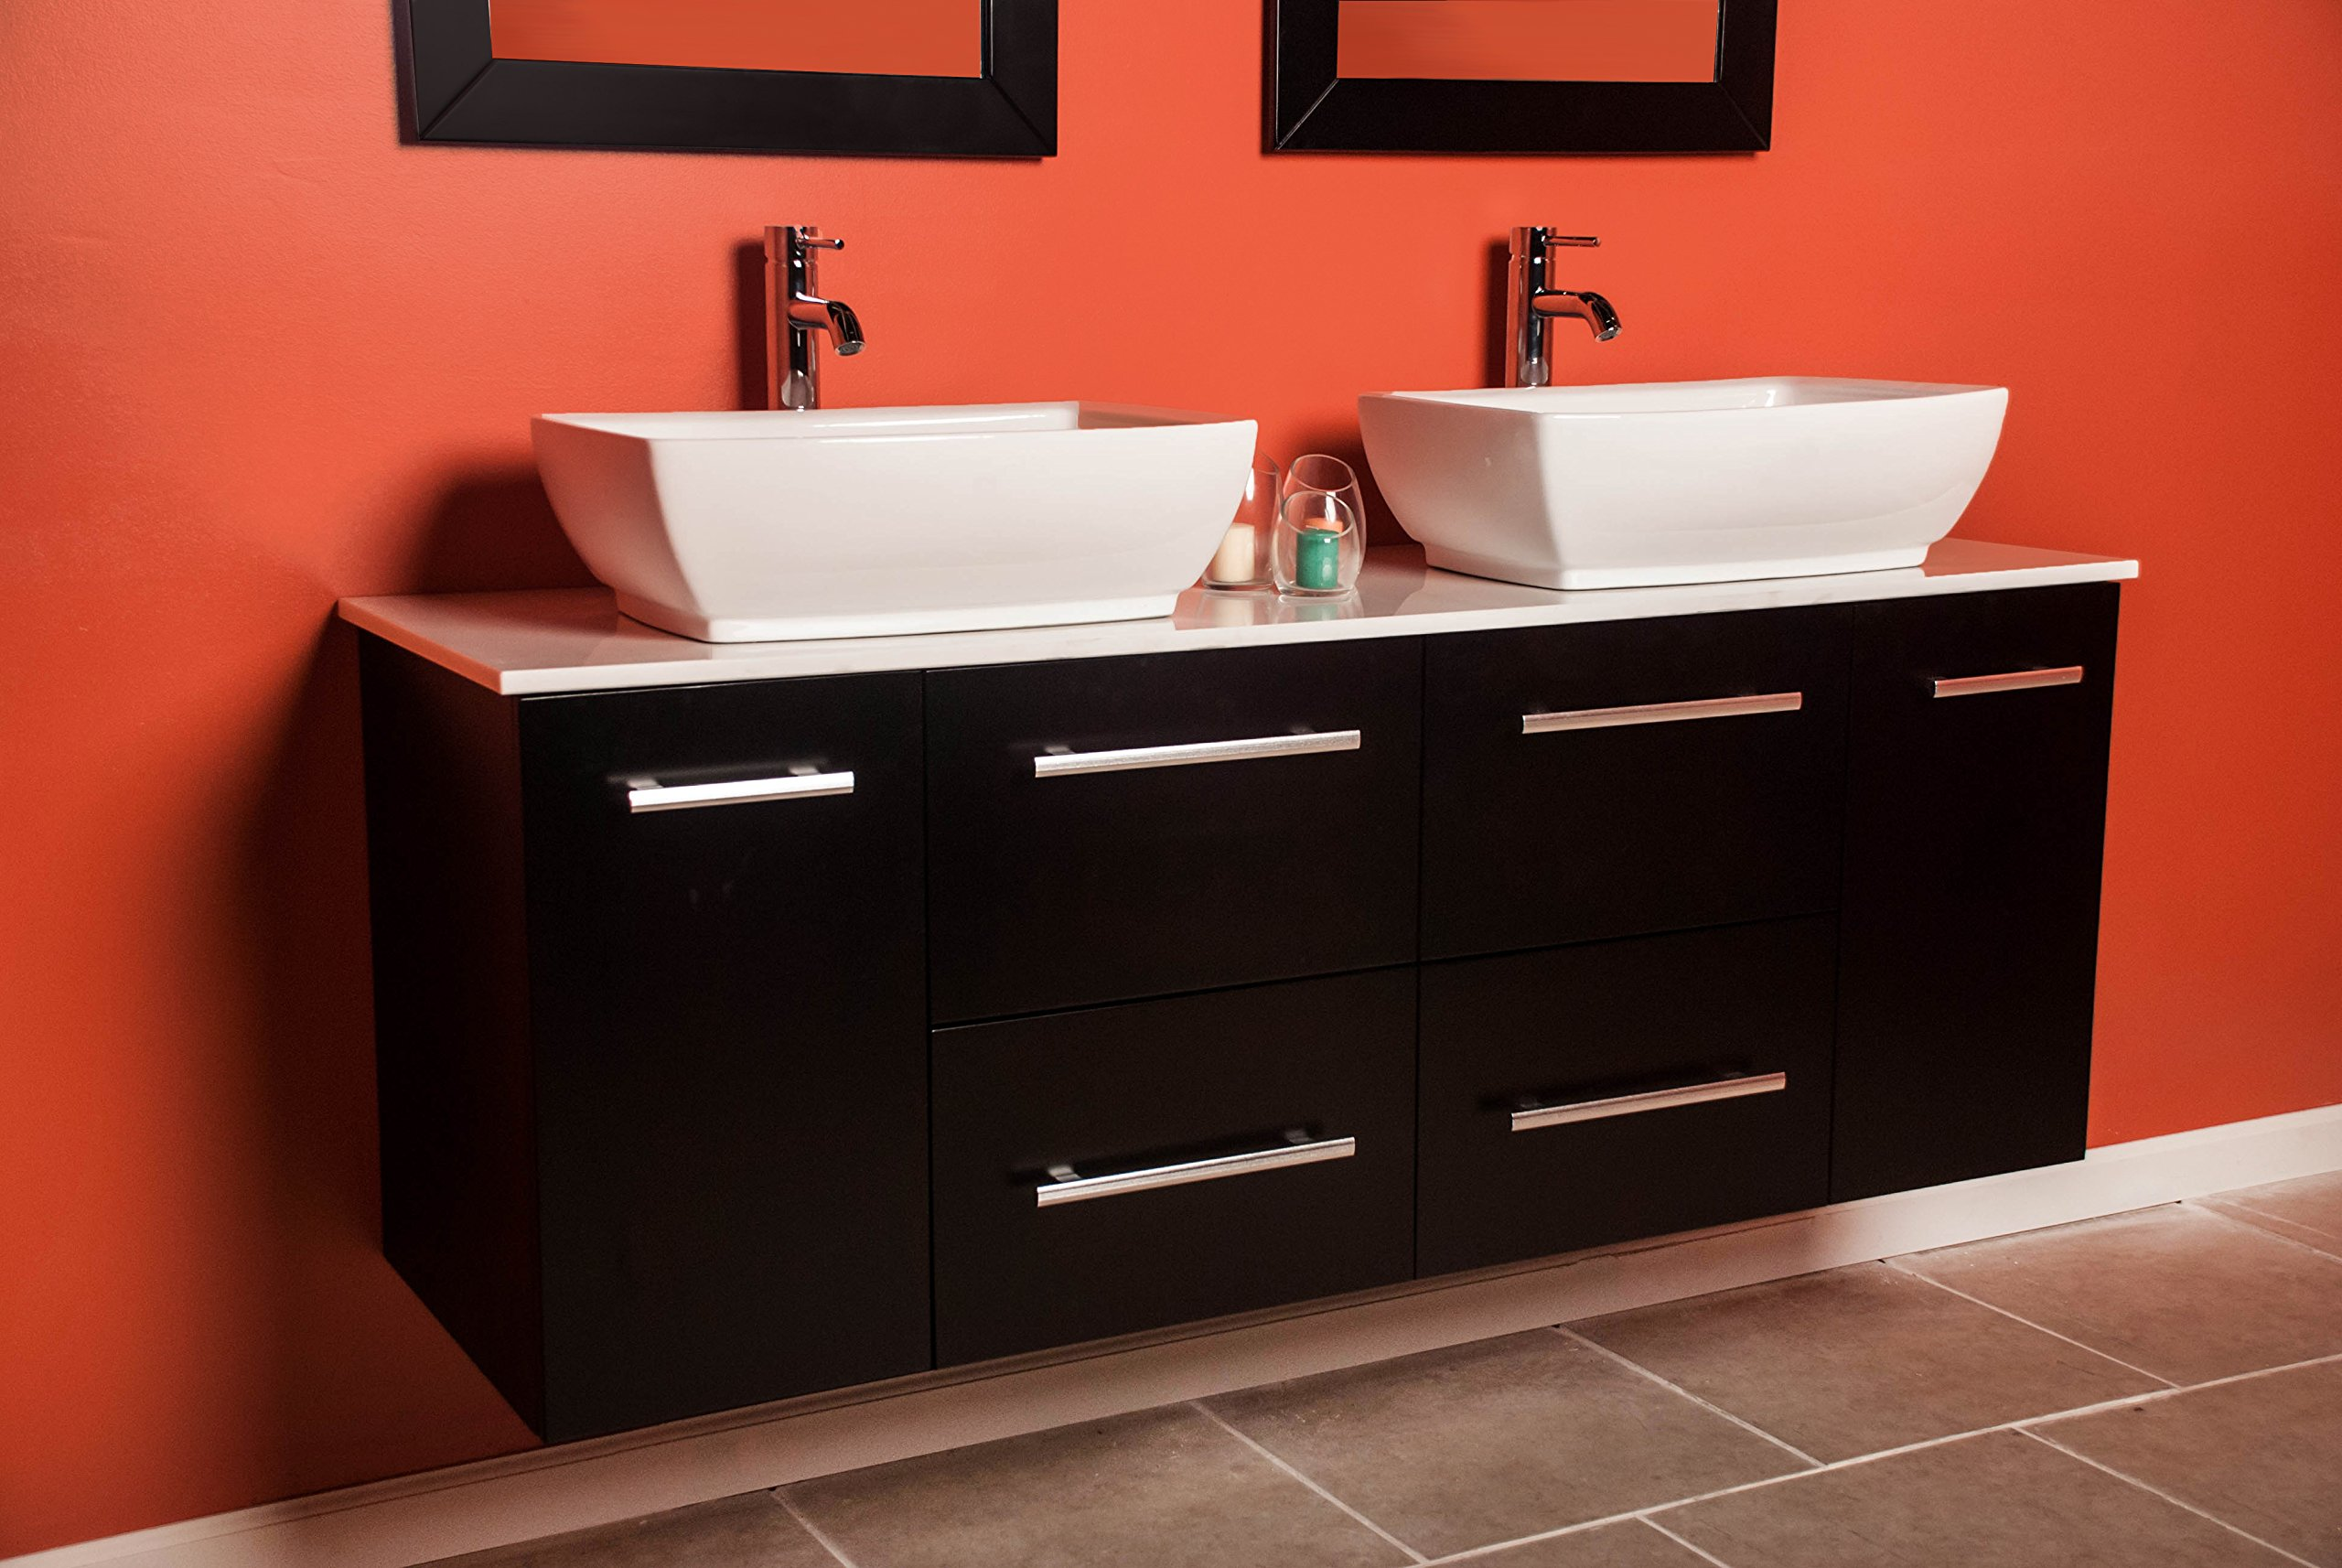 63 Inch Espresso Wall Mounted Wood & Porcelain Double Sink Bathroom Vanity Set- ''Butler'' (Brushed Nickel Faucets) by The Tub Connection